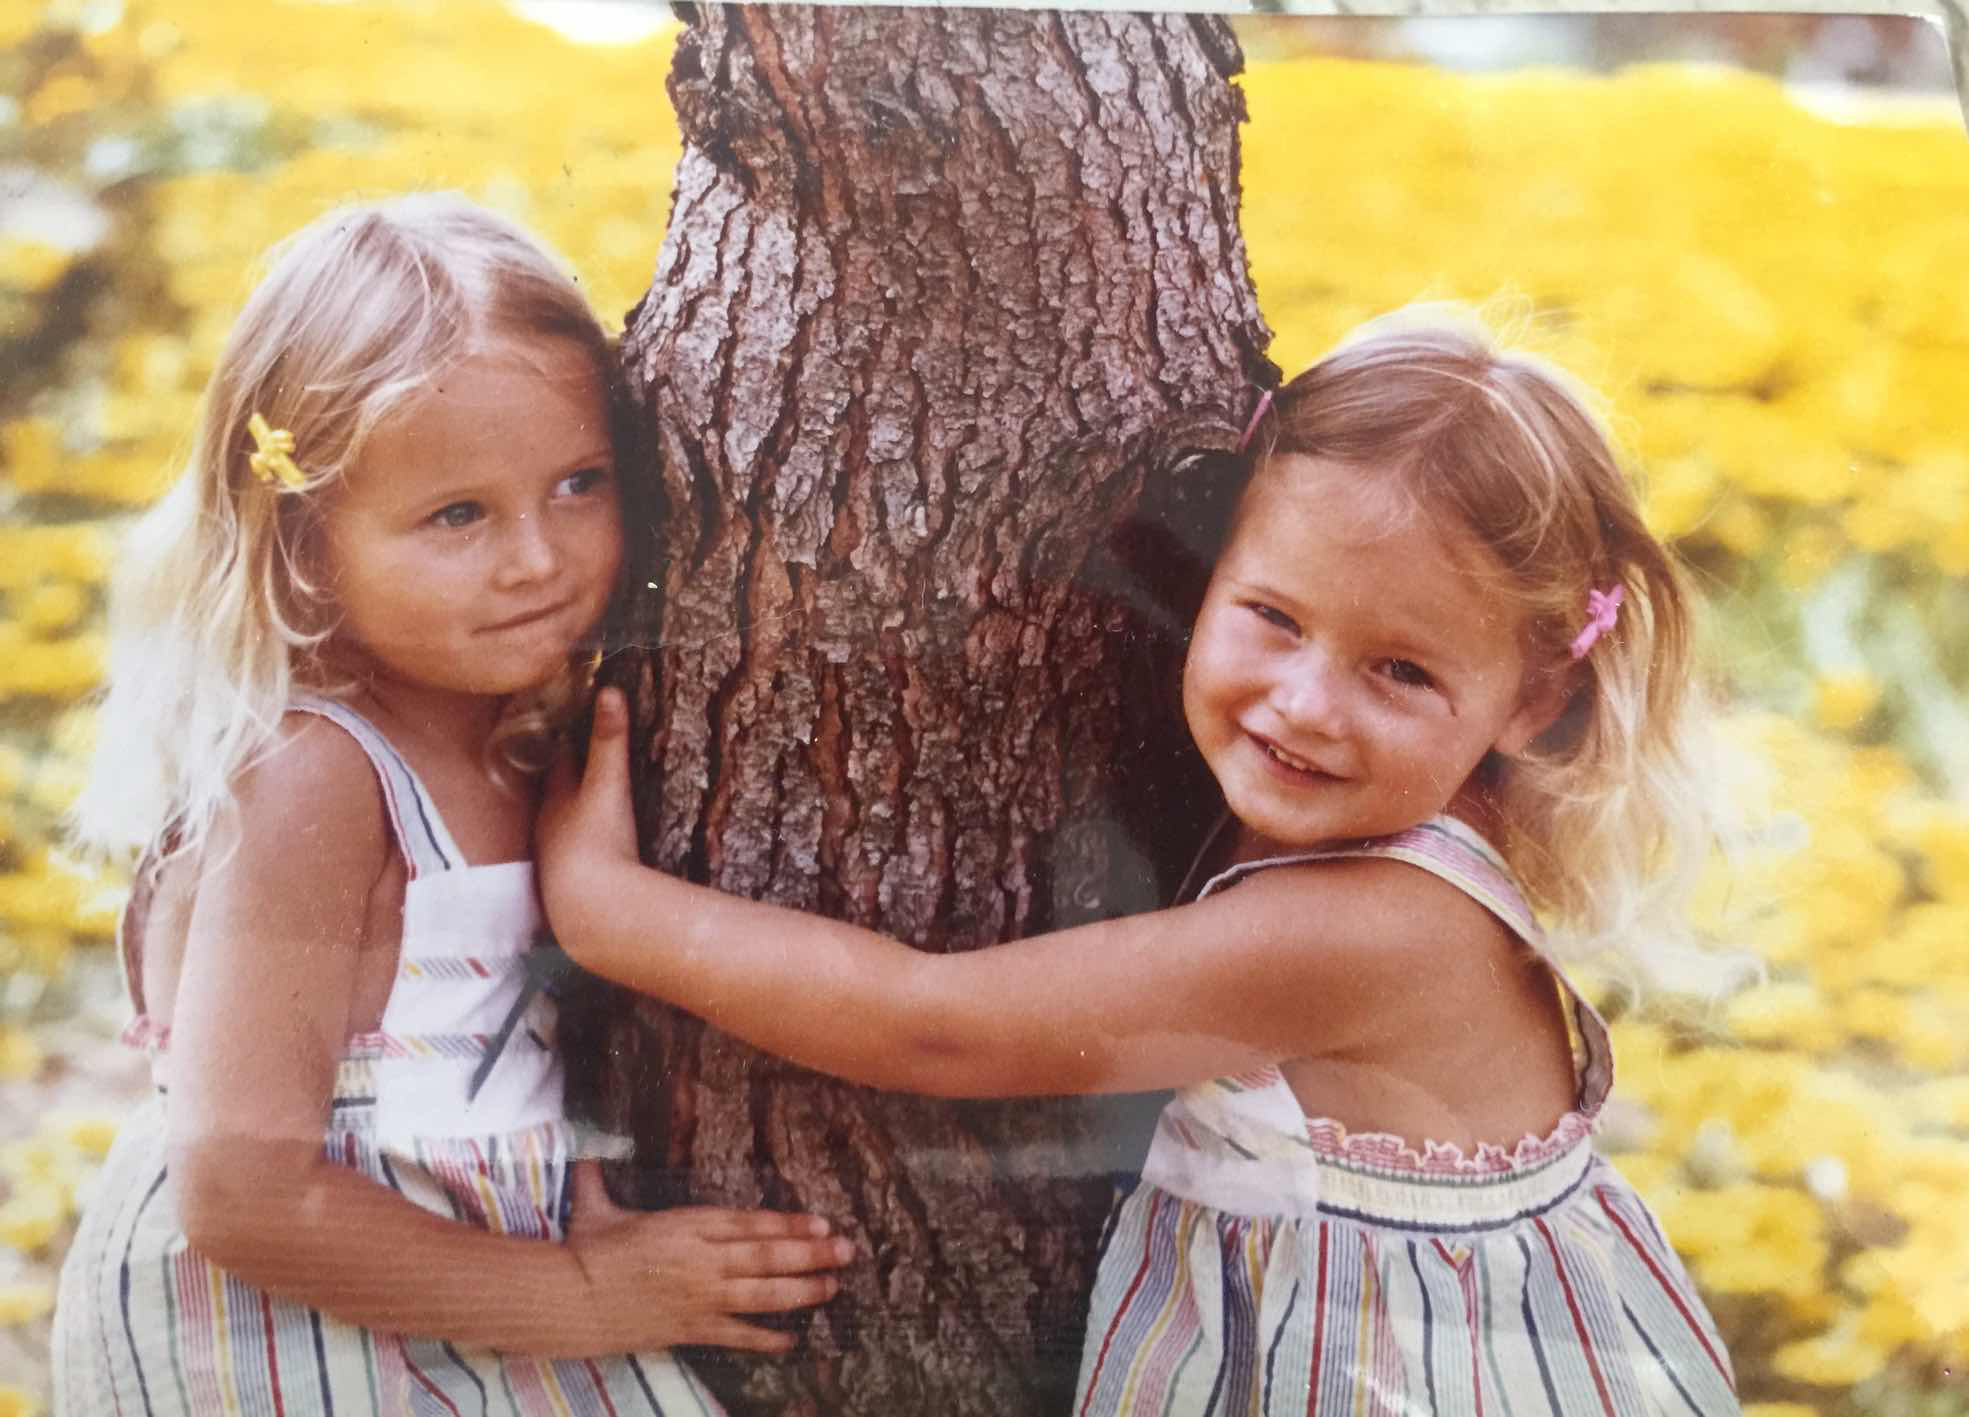 identical twin girls hugging a tree